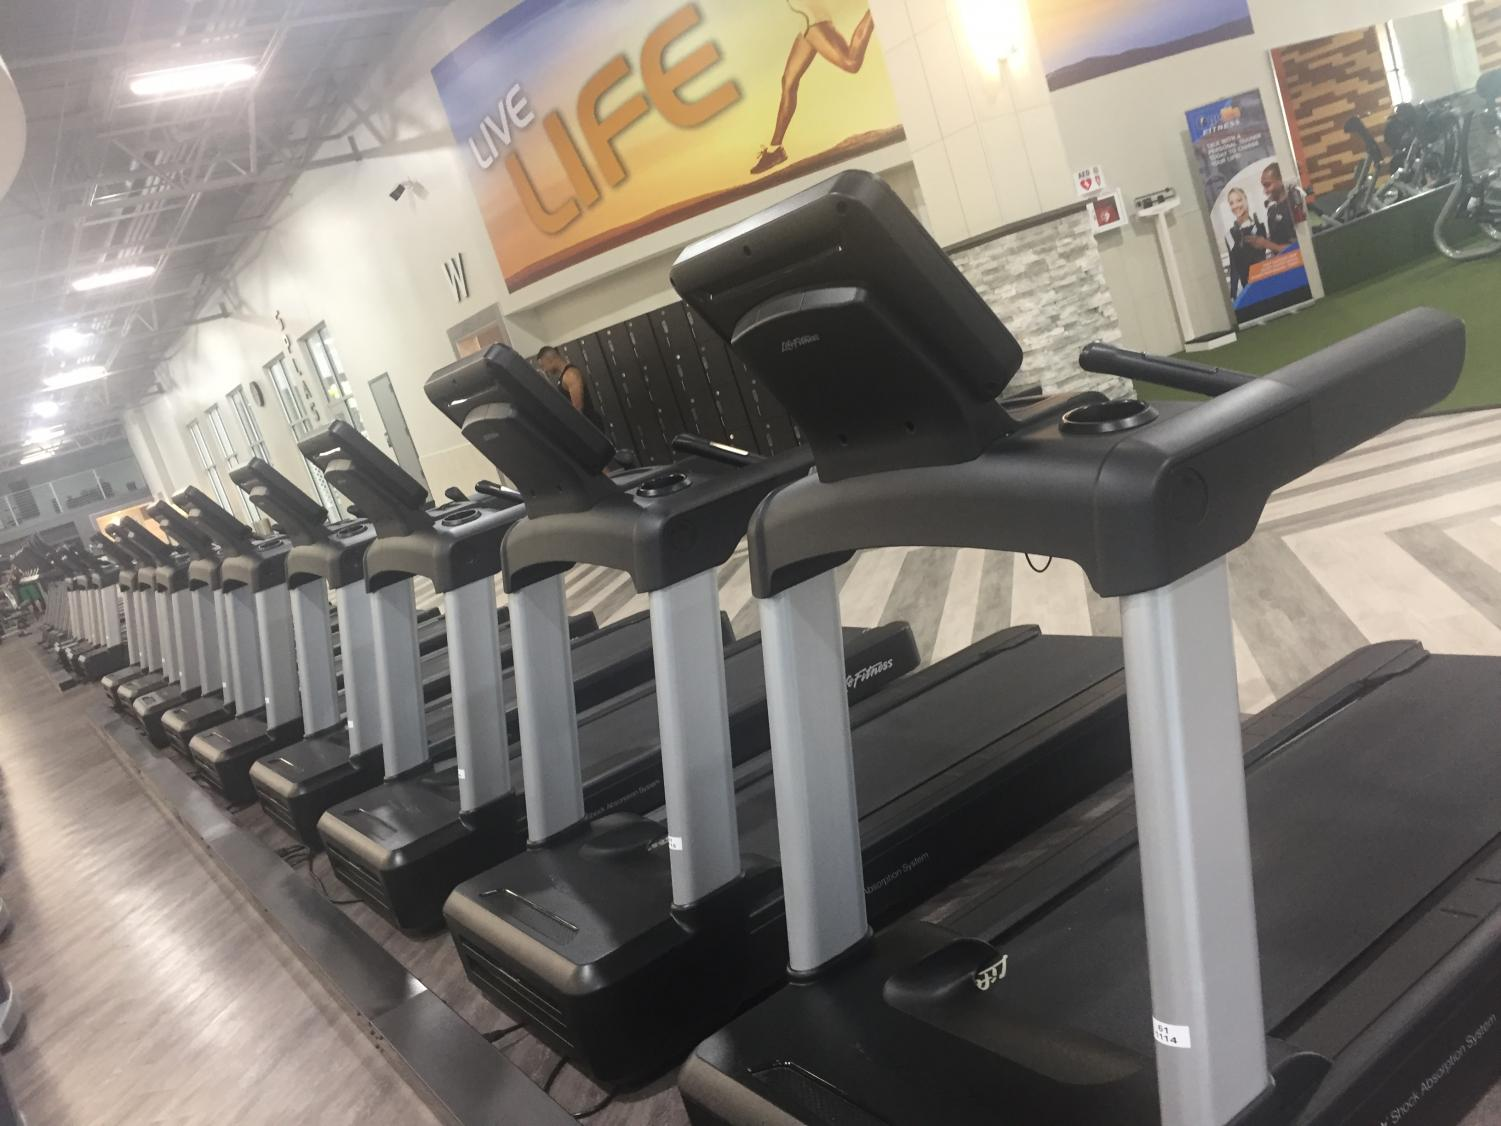 Treadmills at Onelife Fitness Redmill.